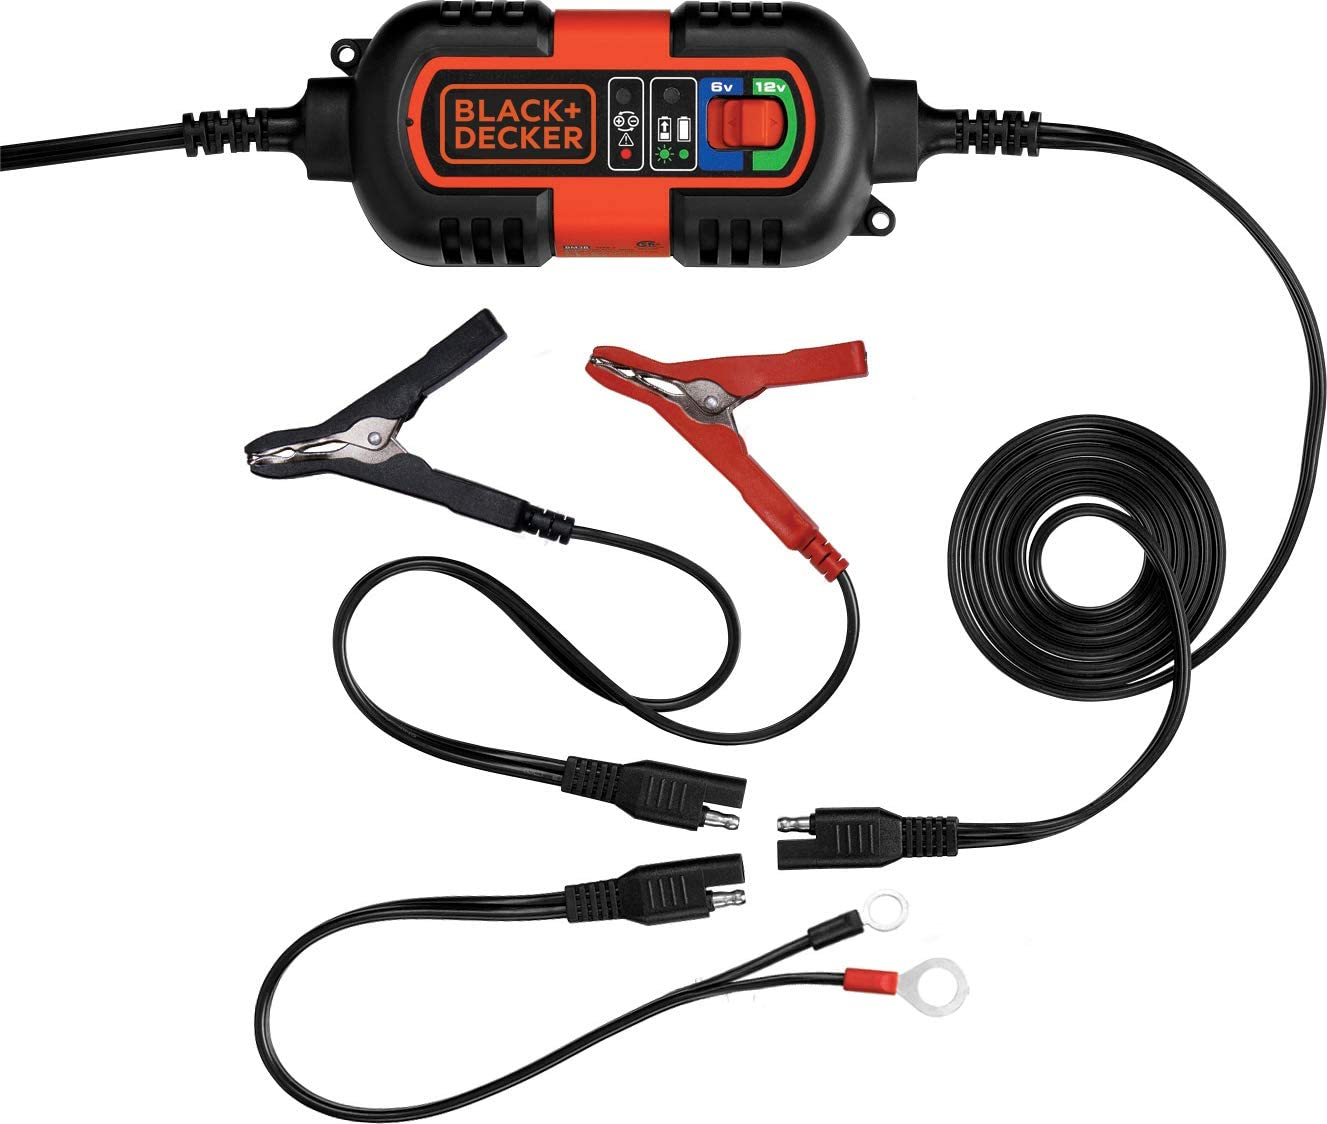 BLACK+DECKER BM3B Fully Automatic 6V/12V Battery Charger/Maintainer with Cable Clamps